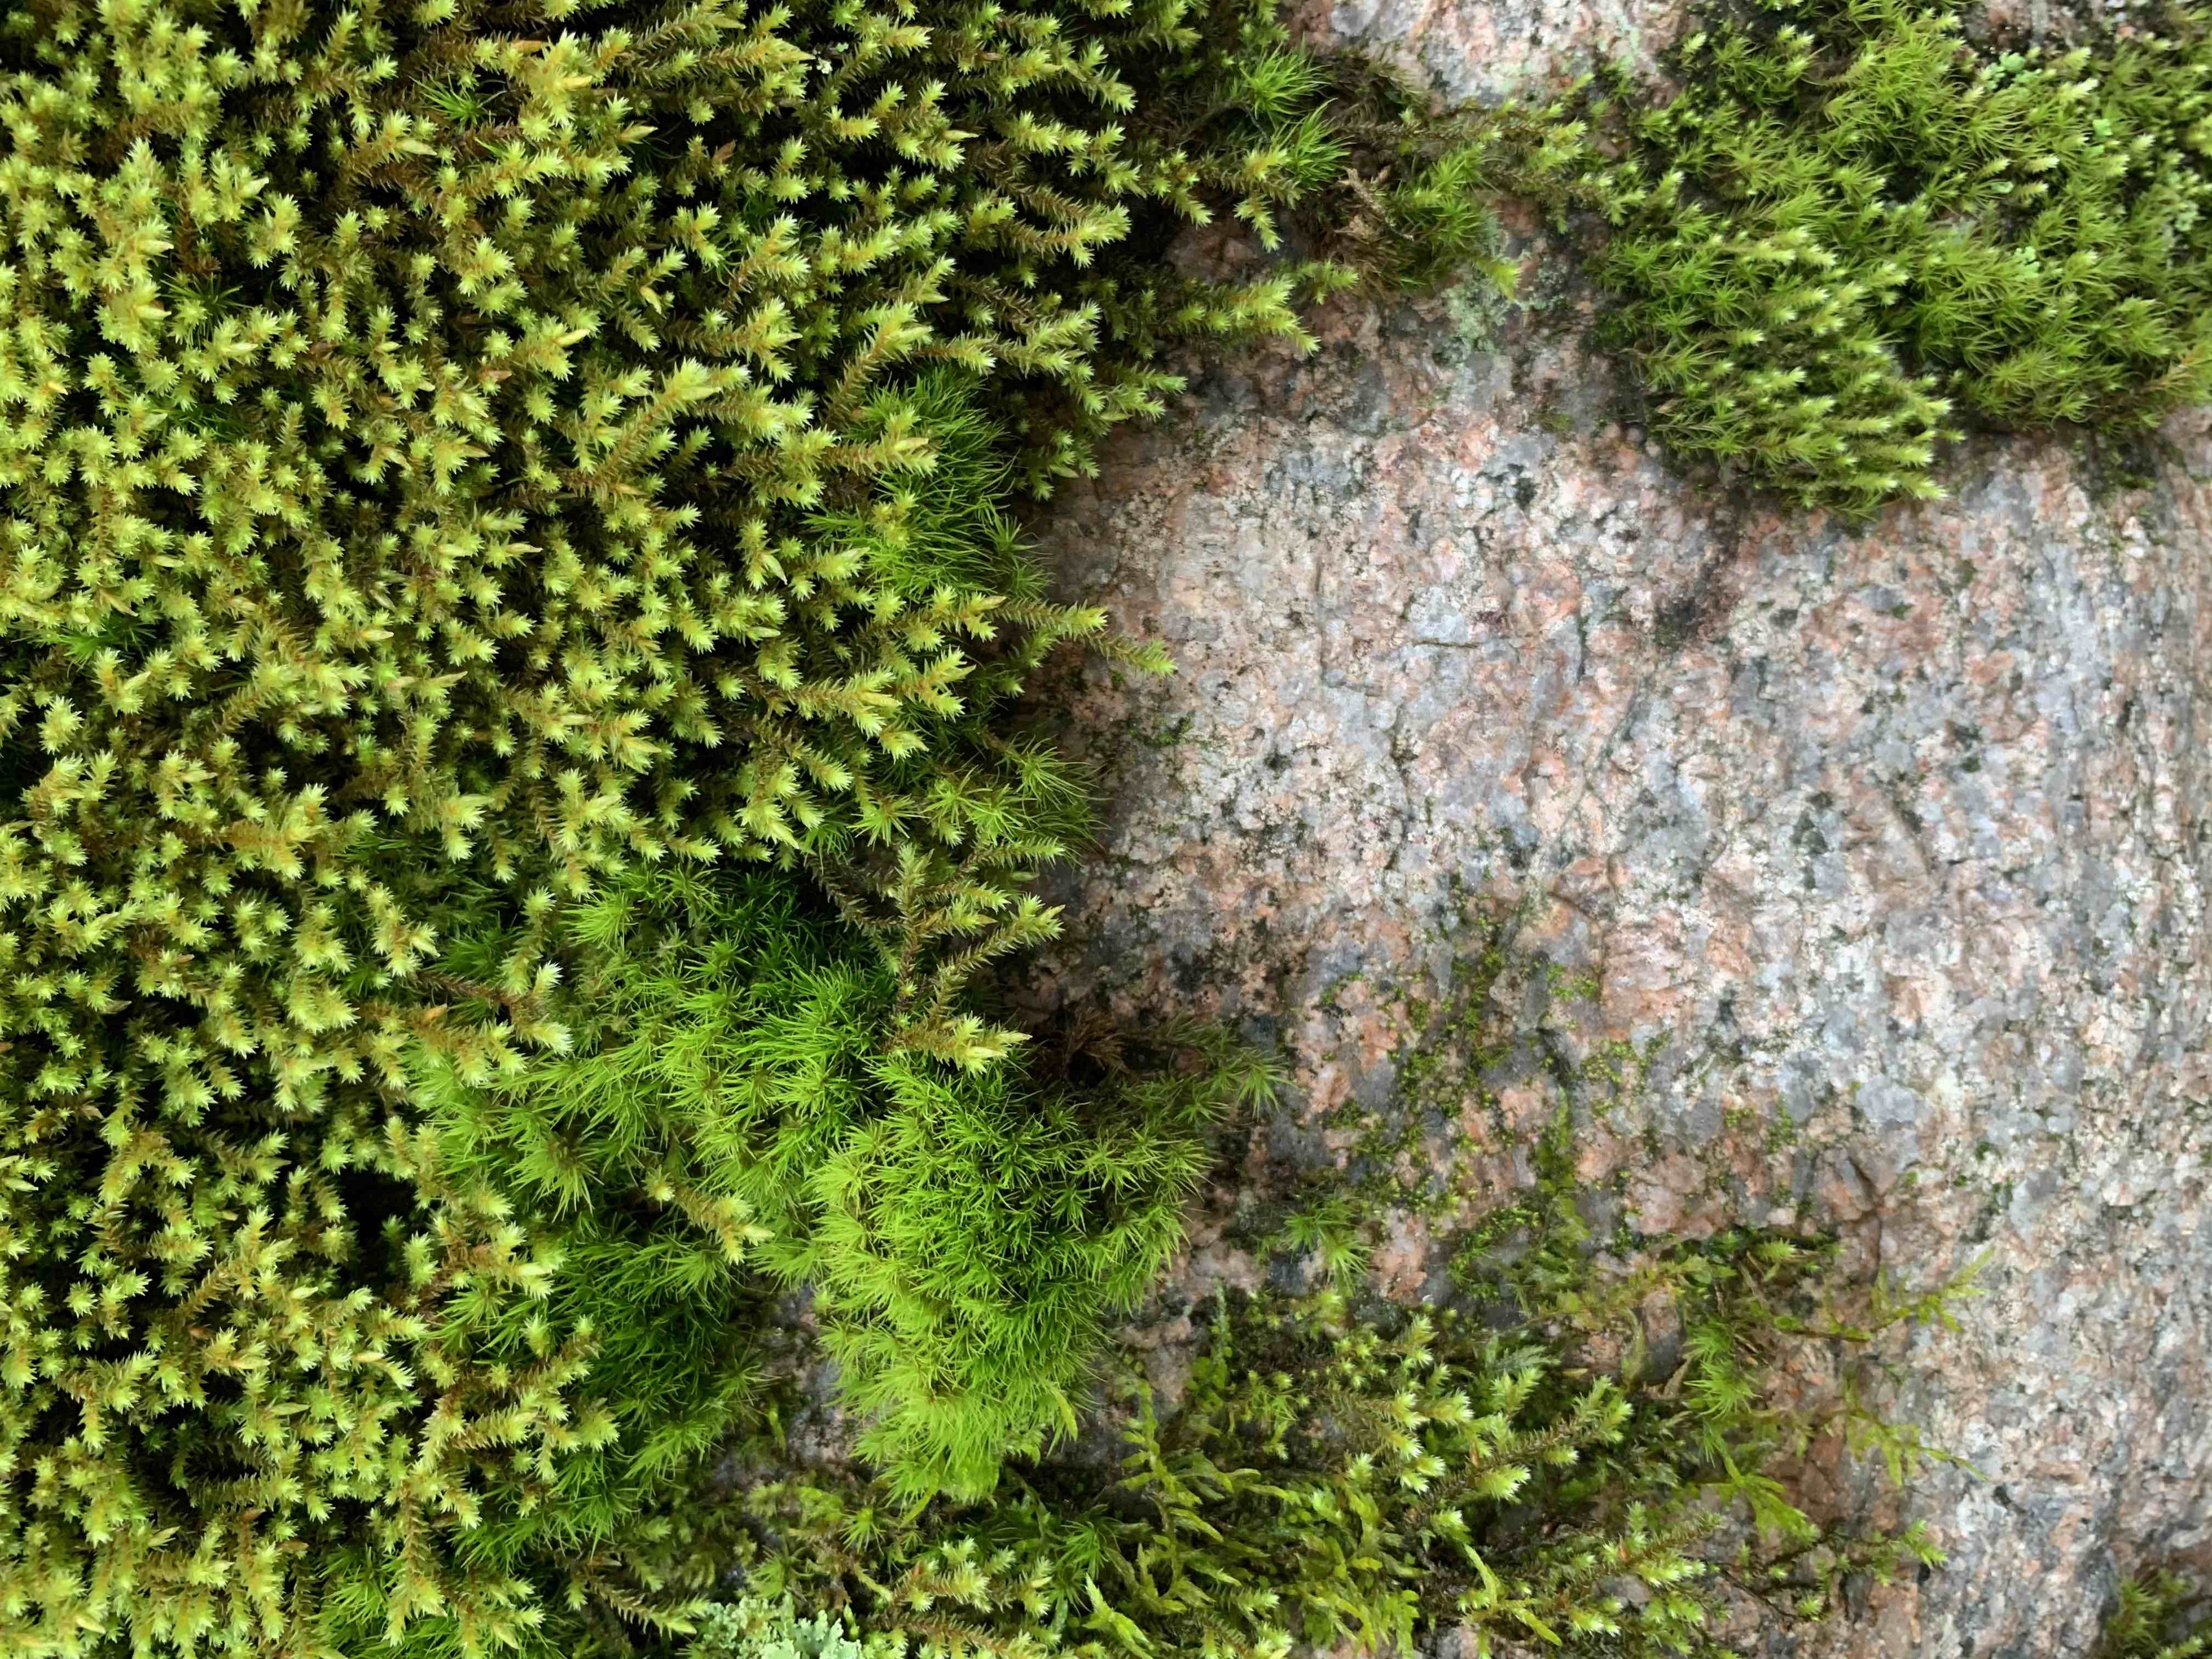 Green moss on a granite boulder. Photo by author. CC-BY license.